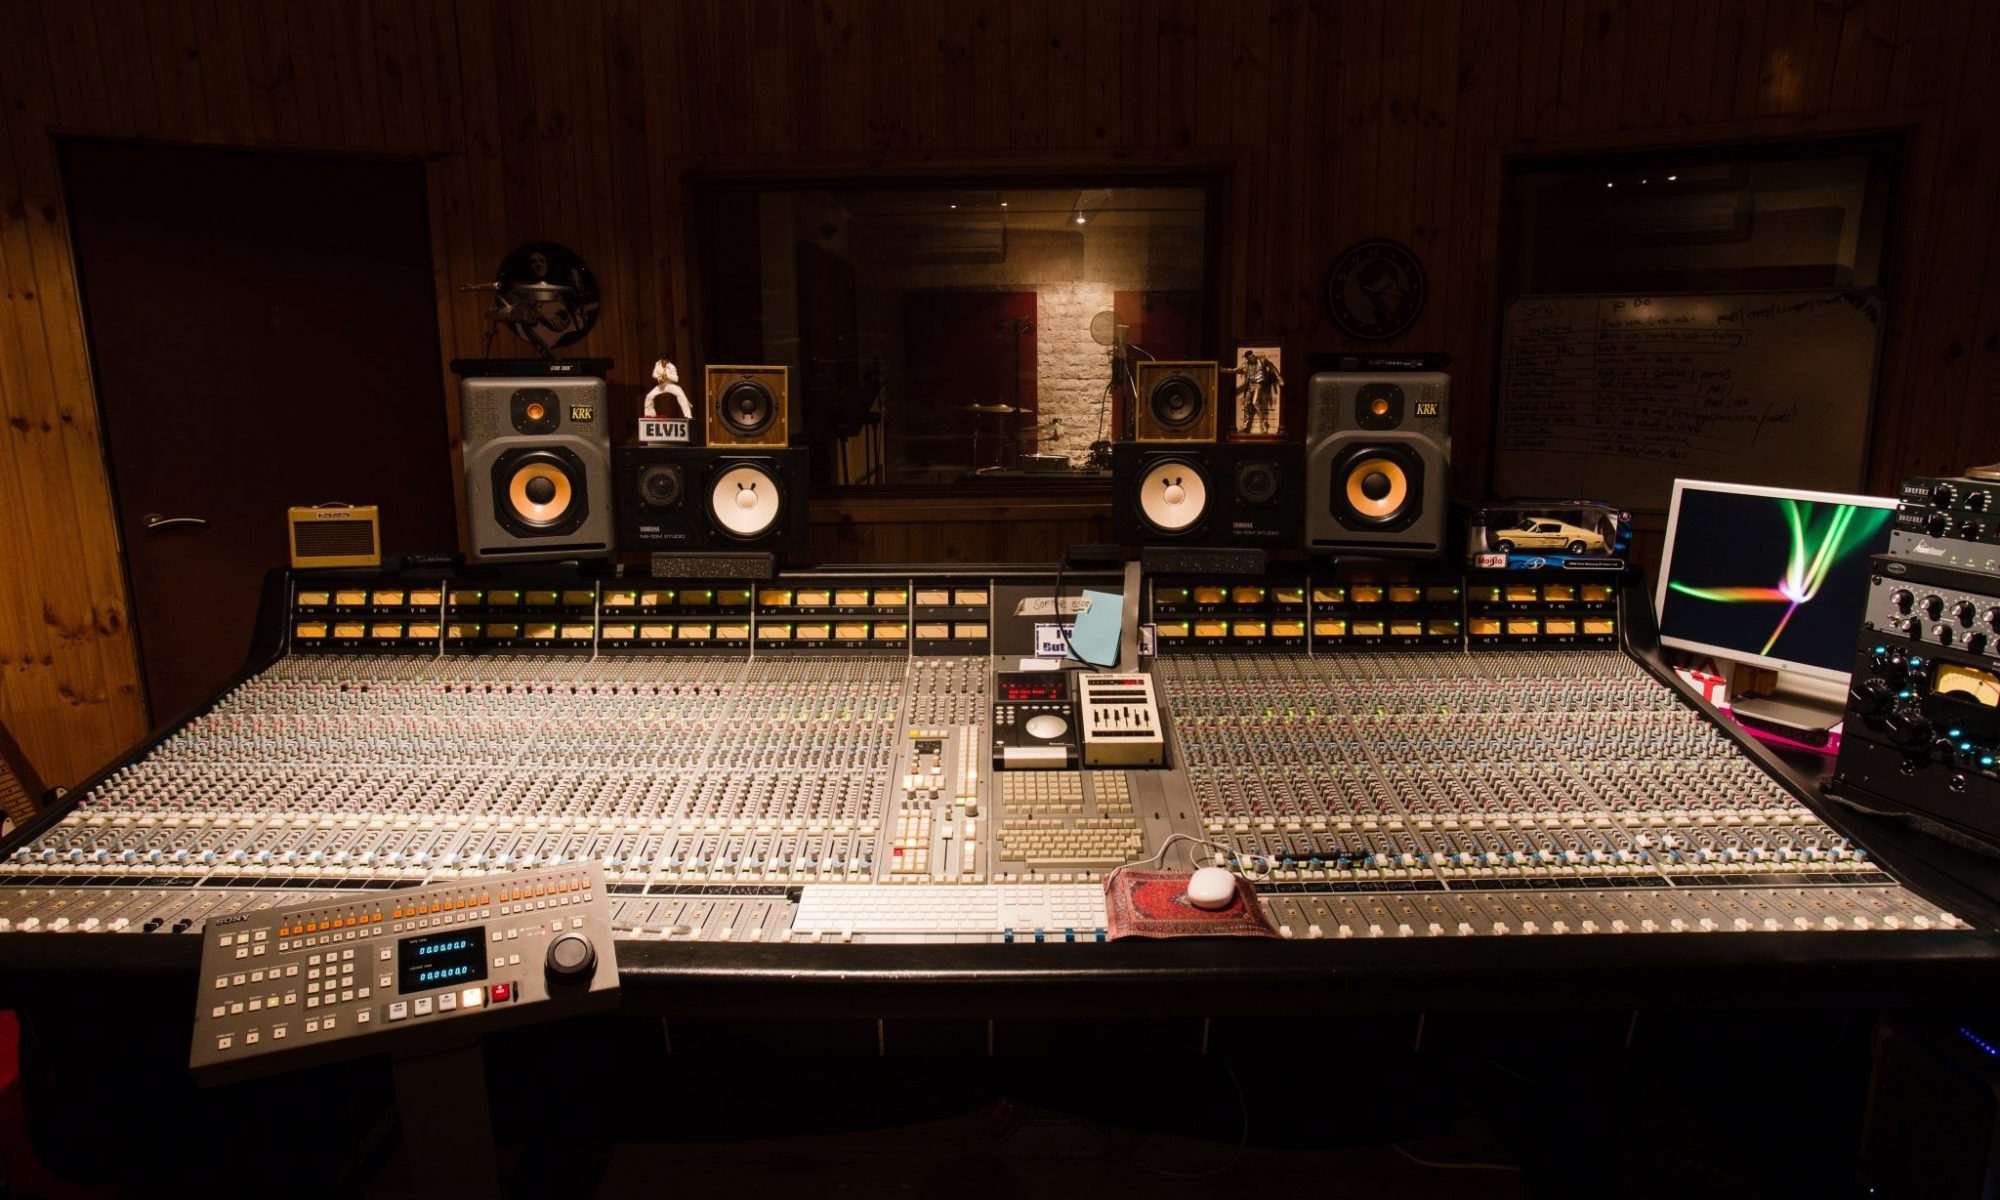 Photo taken by Andy Lund of custom SSL 8056 G+ console at Bellville Studios, Western Cape, South Africa